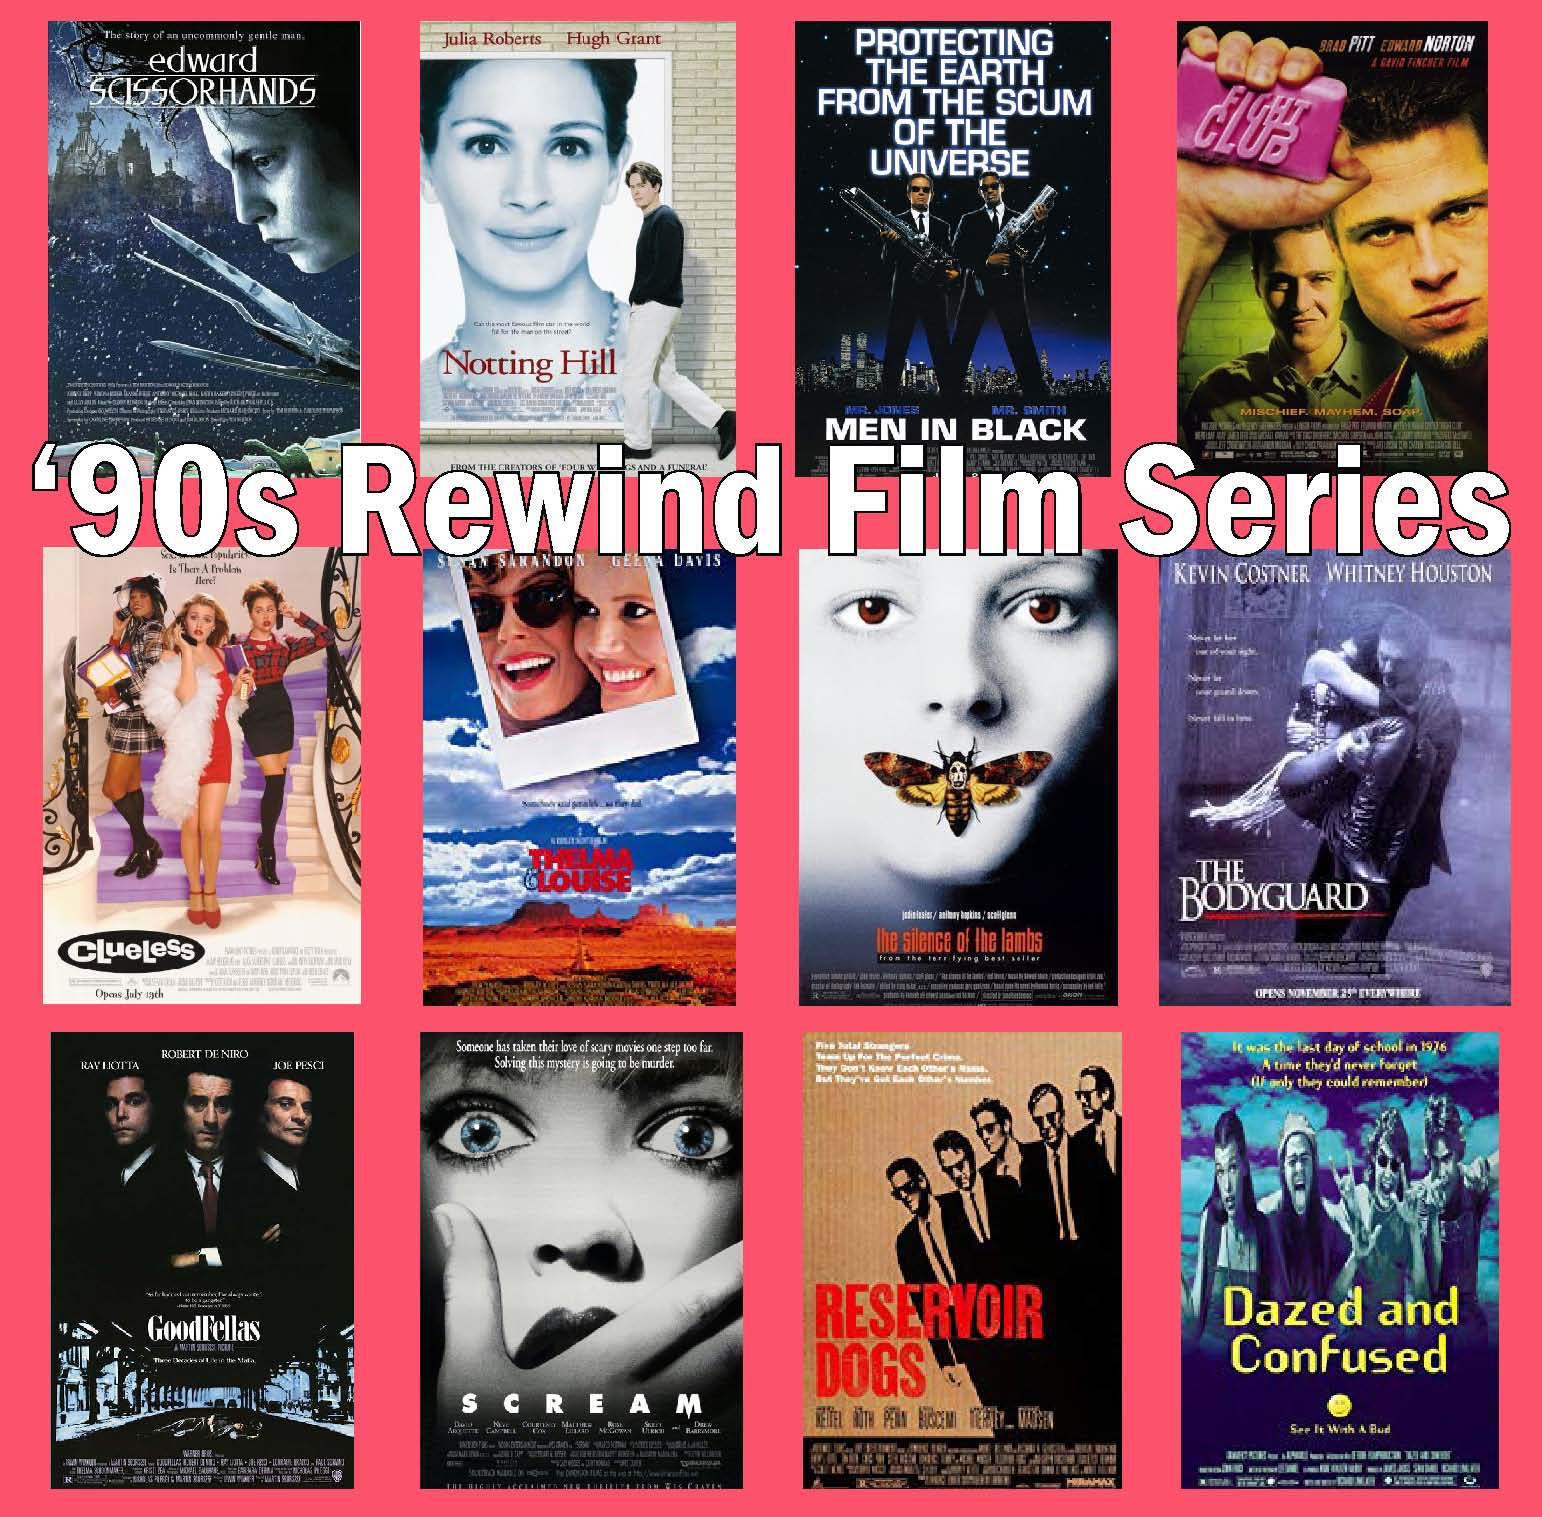 90s_rewind_series_artwork_for_programs_tab.jpg